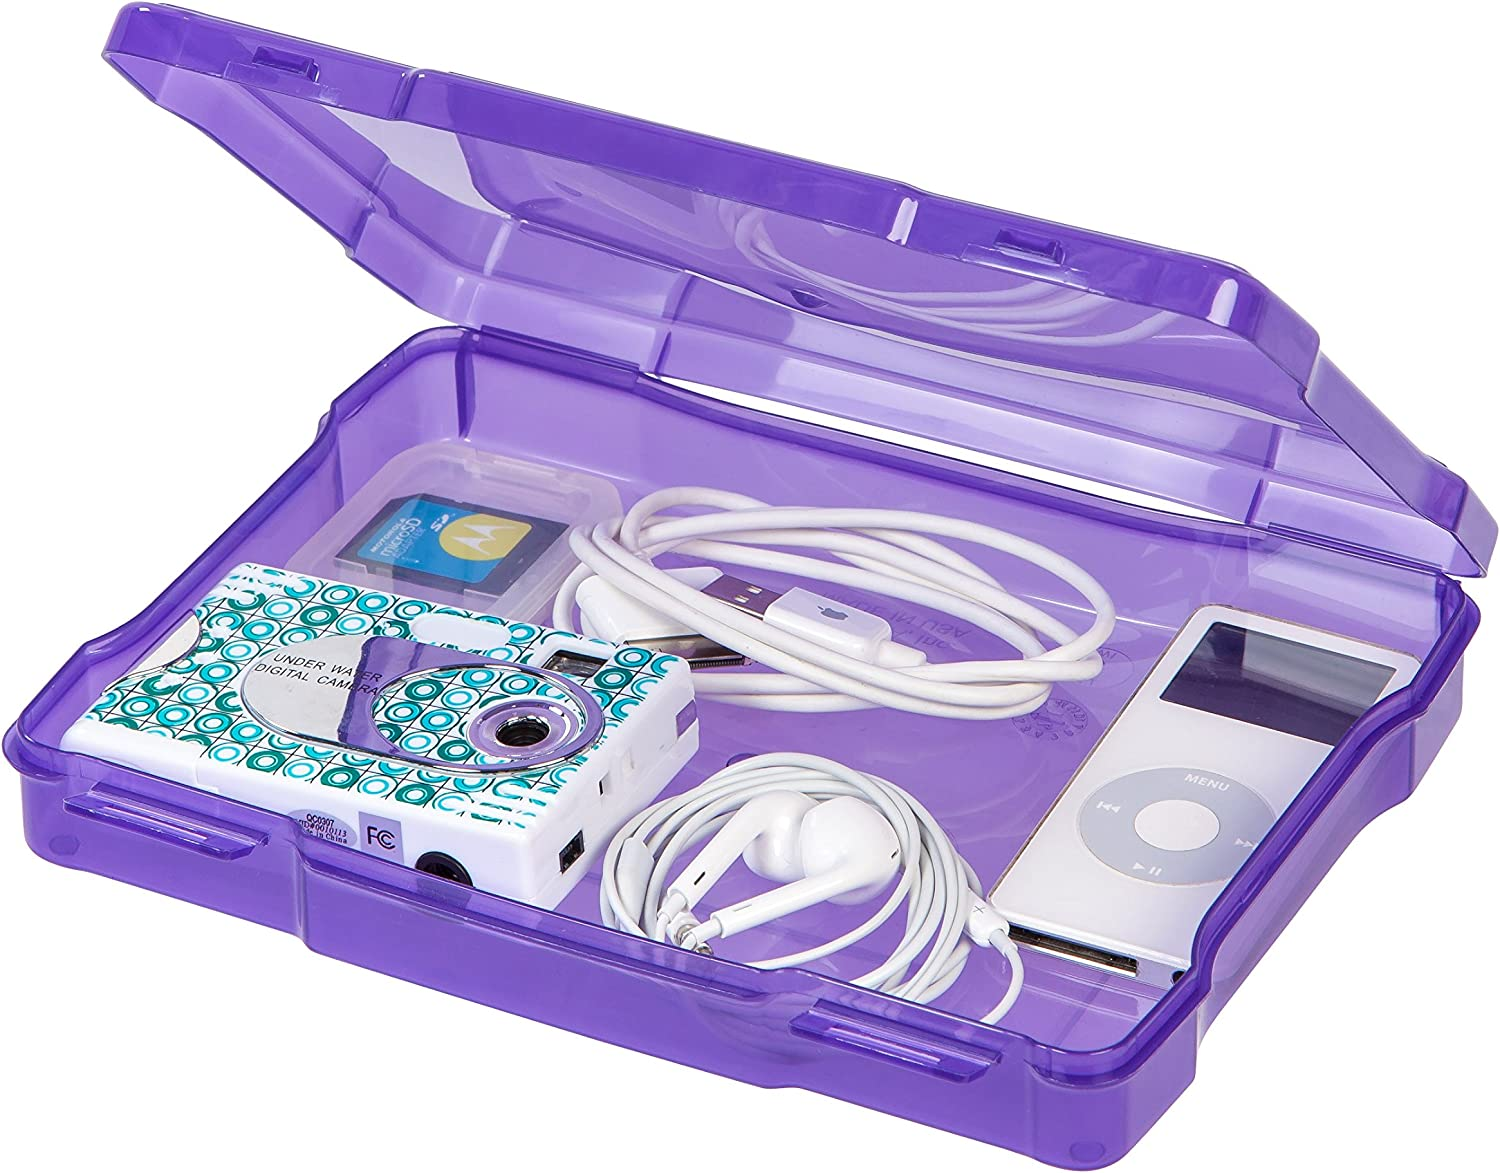 IRIS 5 x 7 Photo and Embellishement Craft Case Assorted Colors